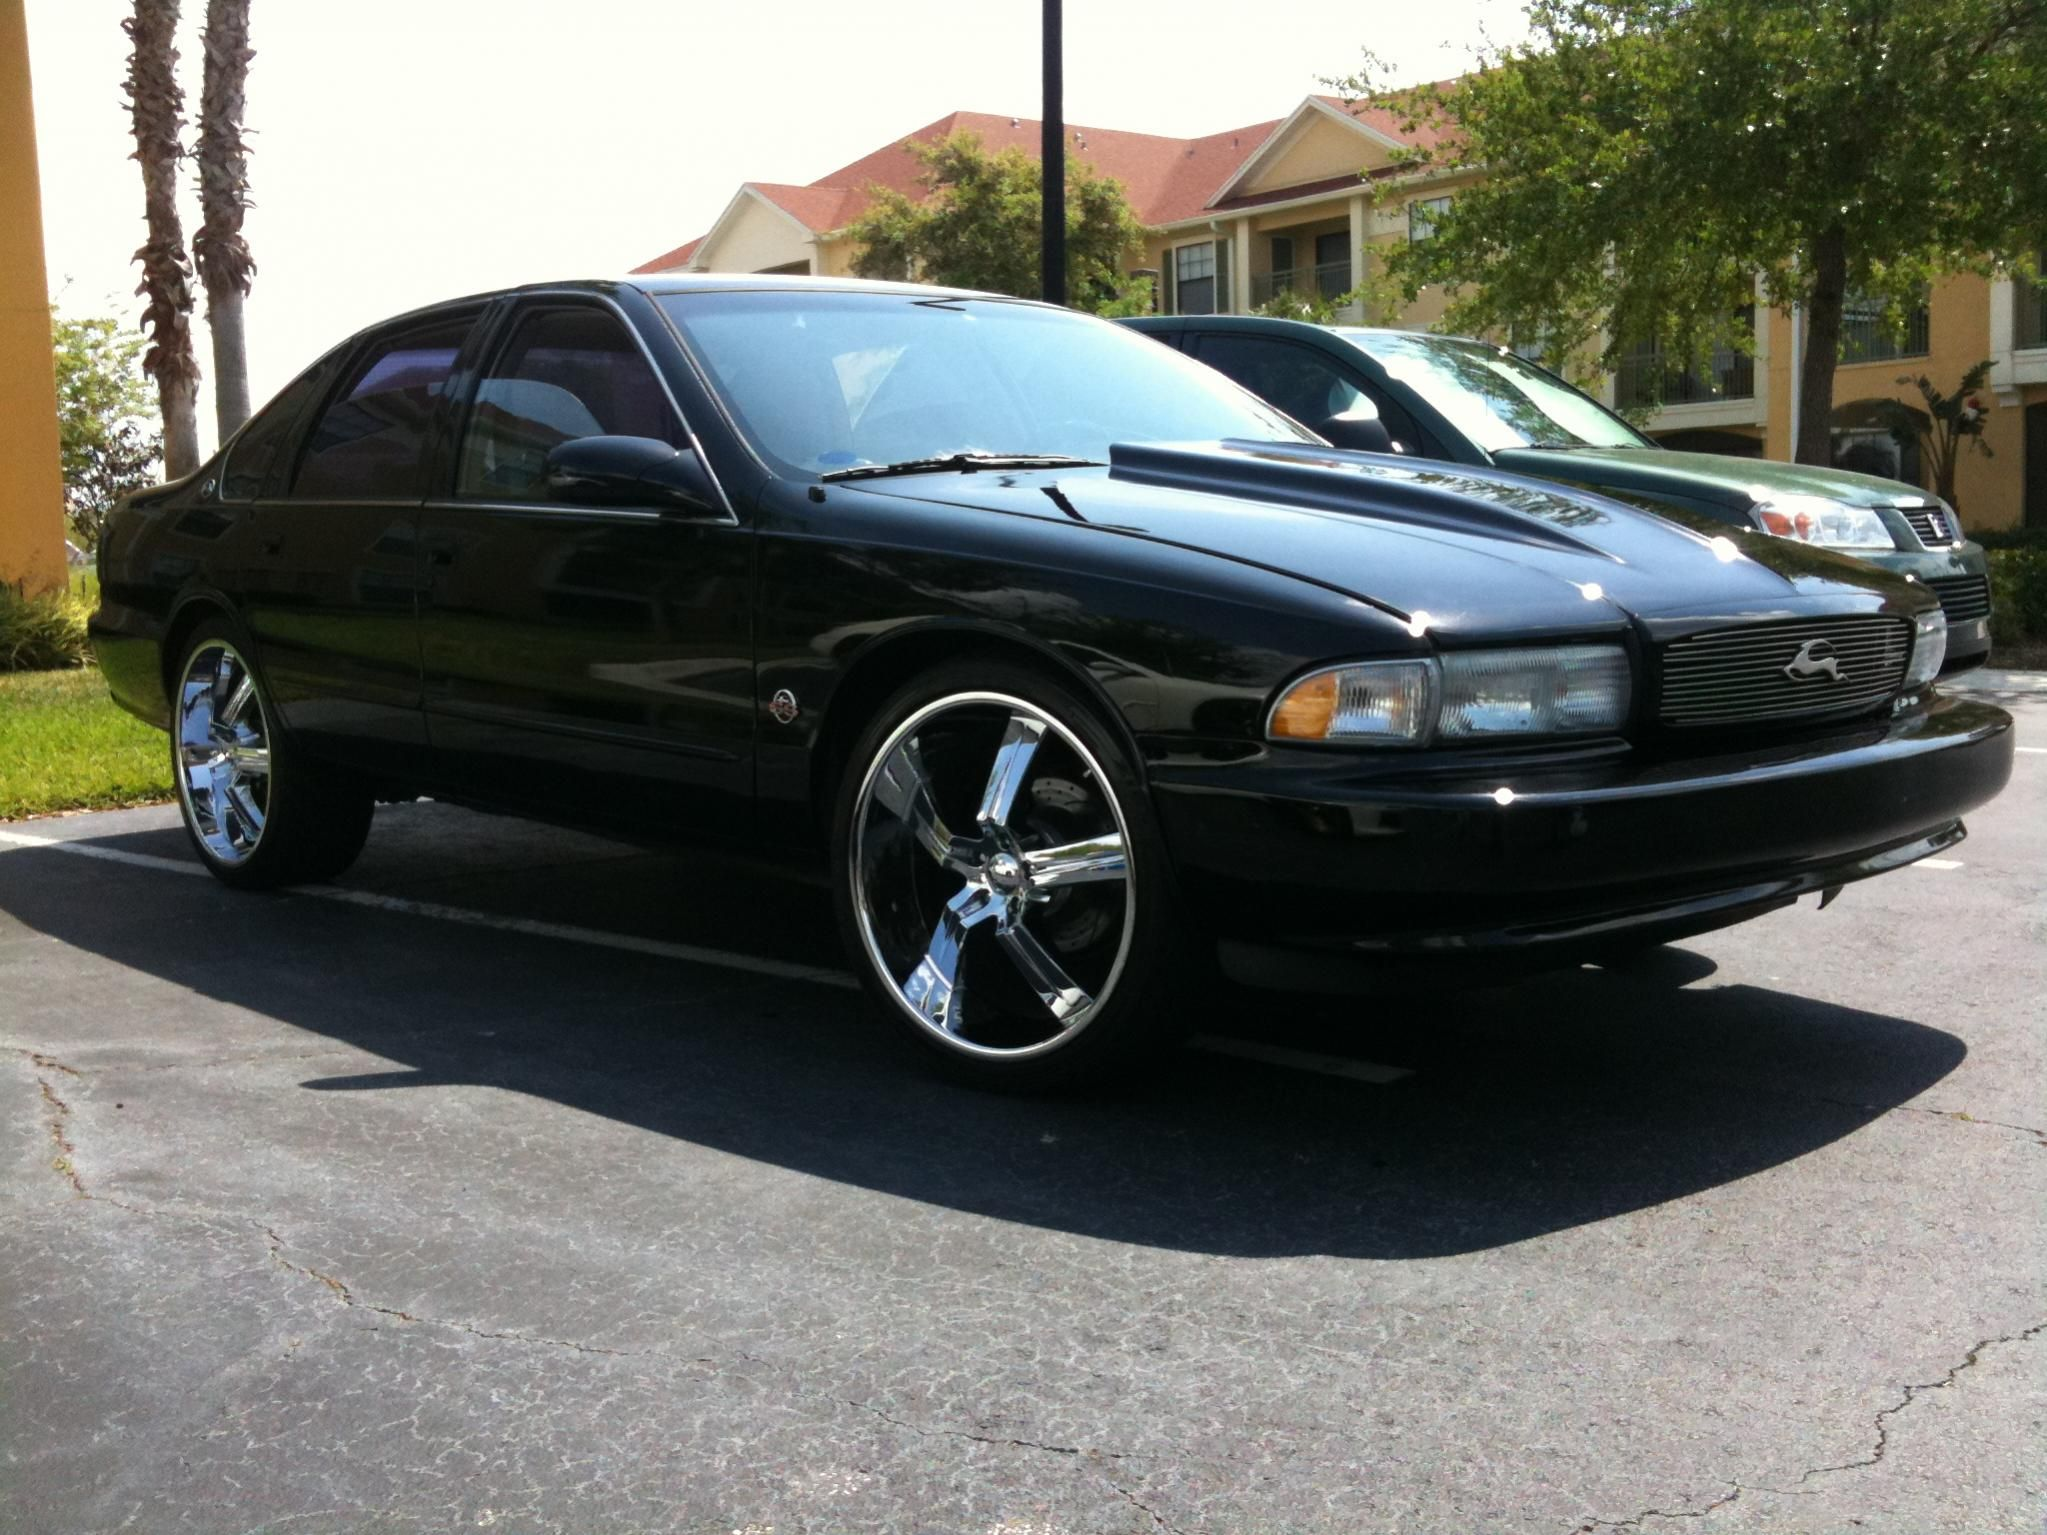 chevy impala 22 inch rims find the classic rims of your. Black Bedroom Furniture Sets. Home Design Ideas